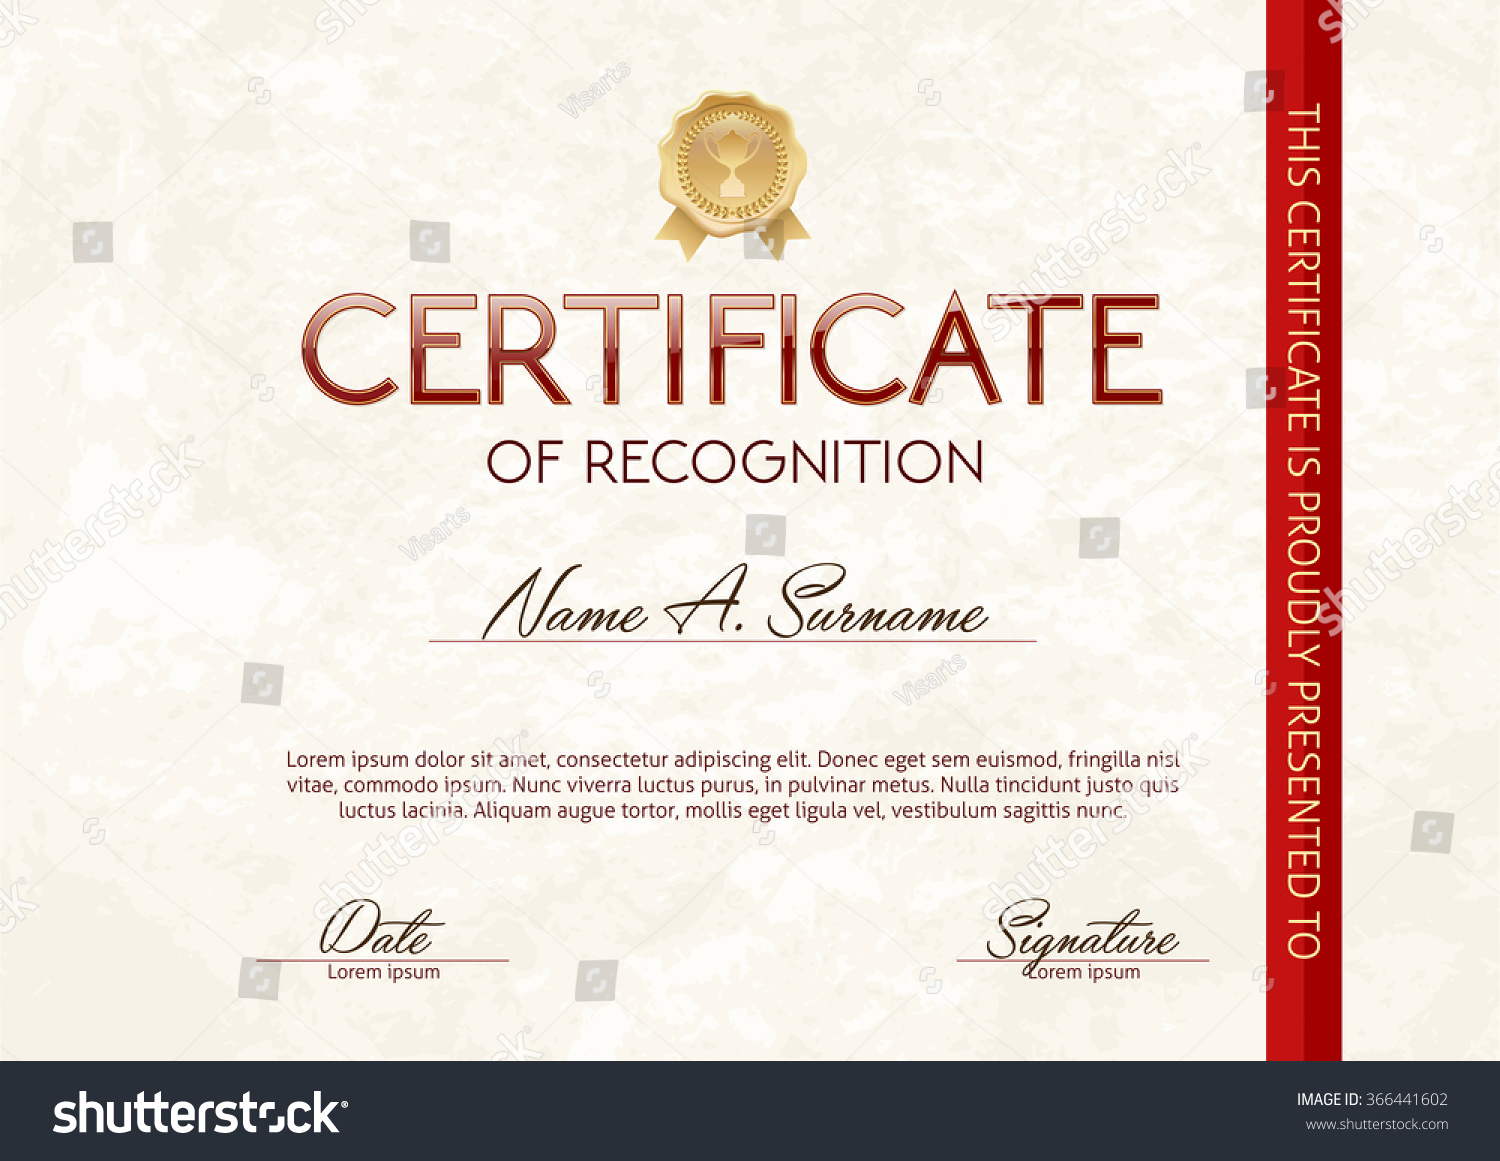 Certificate recognition template stock vector 366441602 shutterstock certificate of recognition template yelopaper Image collections